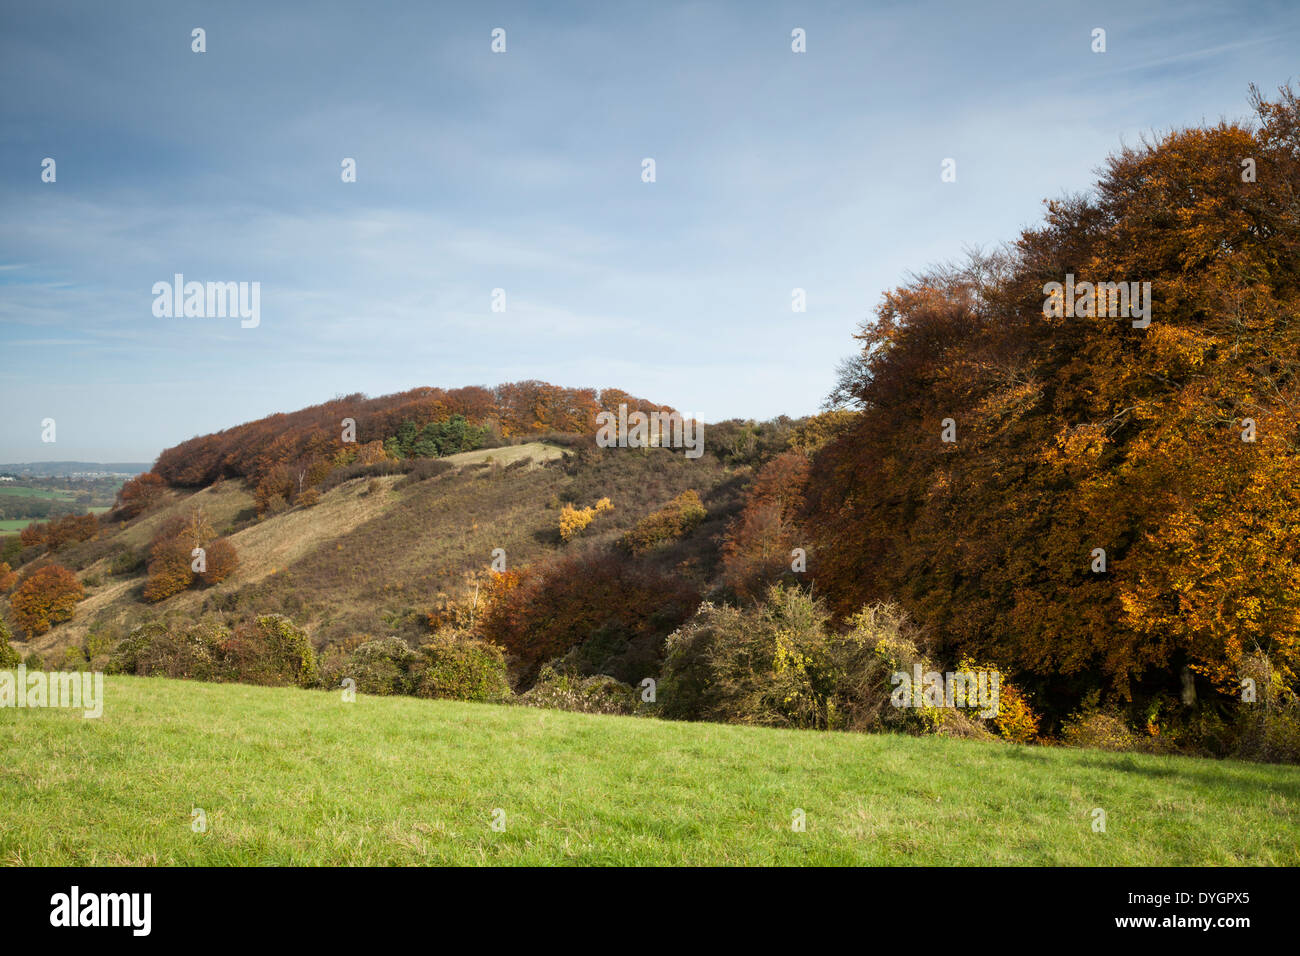 The long chalkland escarpment of Sharpenhoe Clappers in autumn, Chiltern Hills, Bedfordshire, England - Stock Image